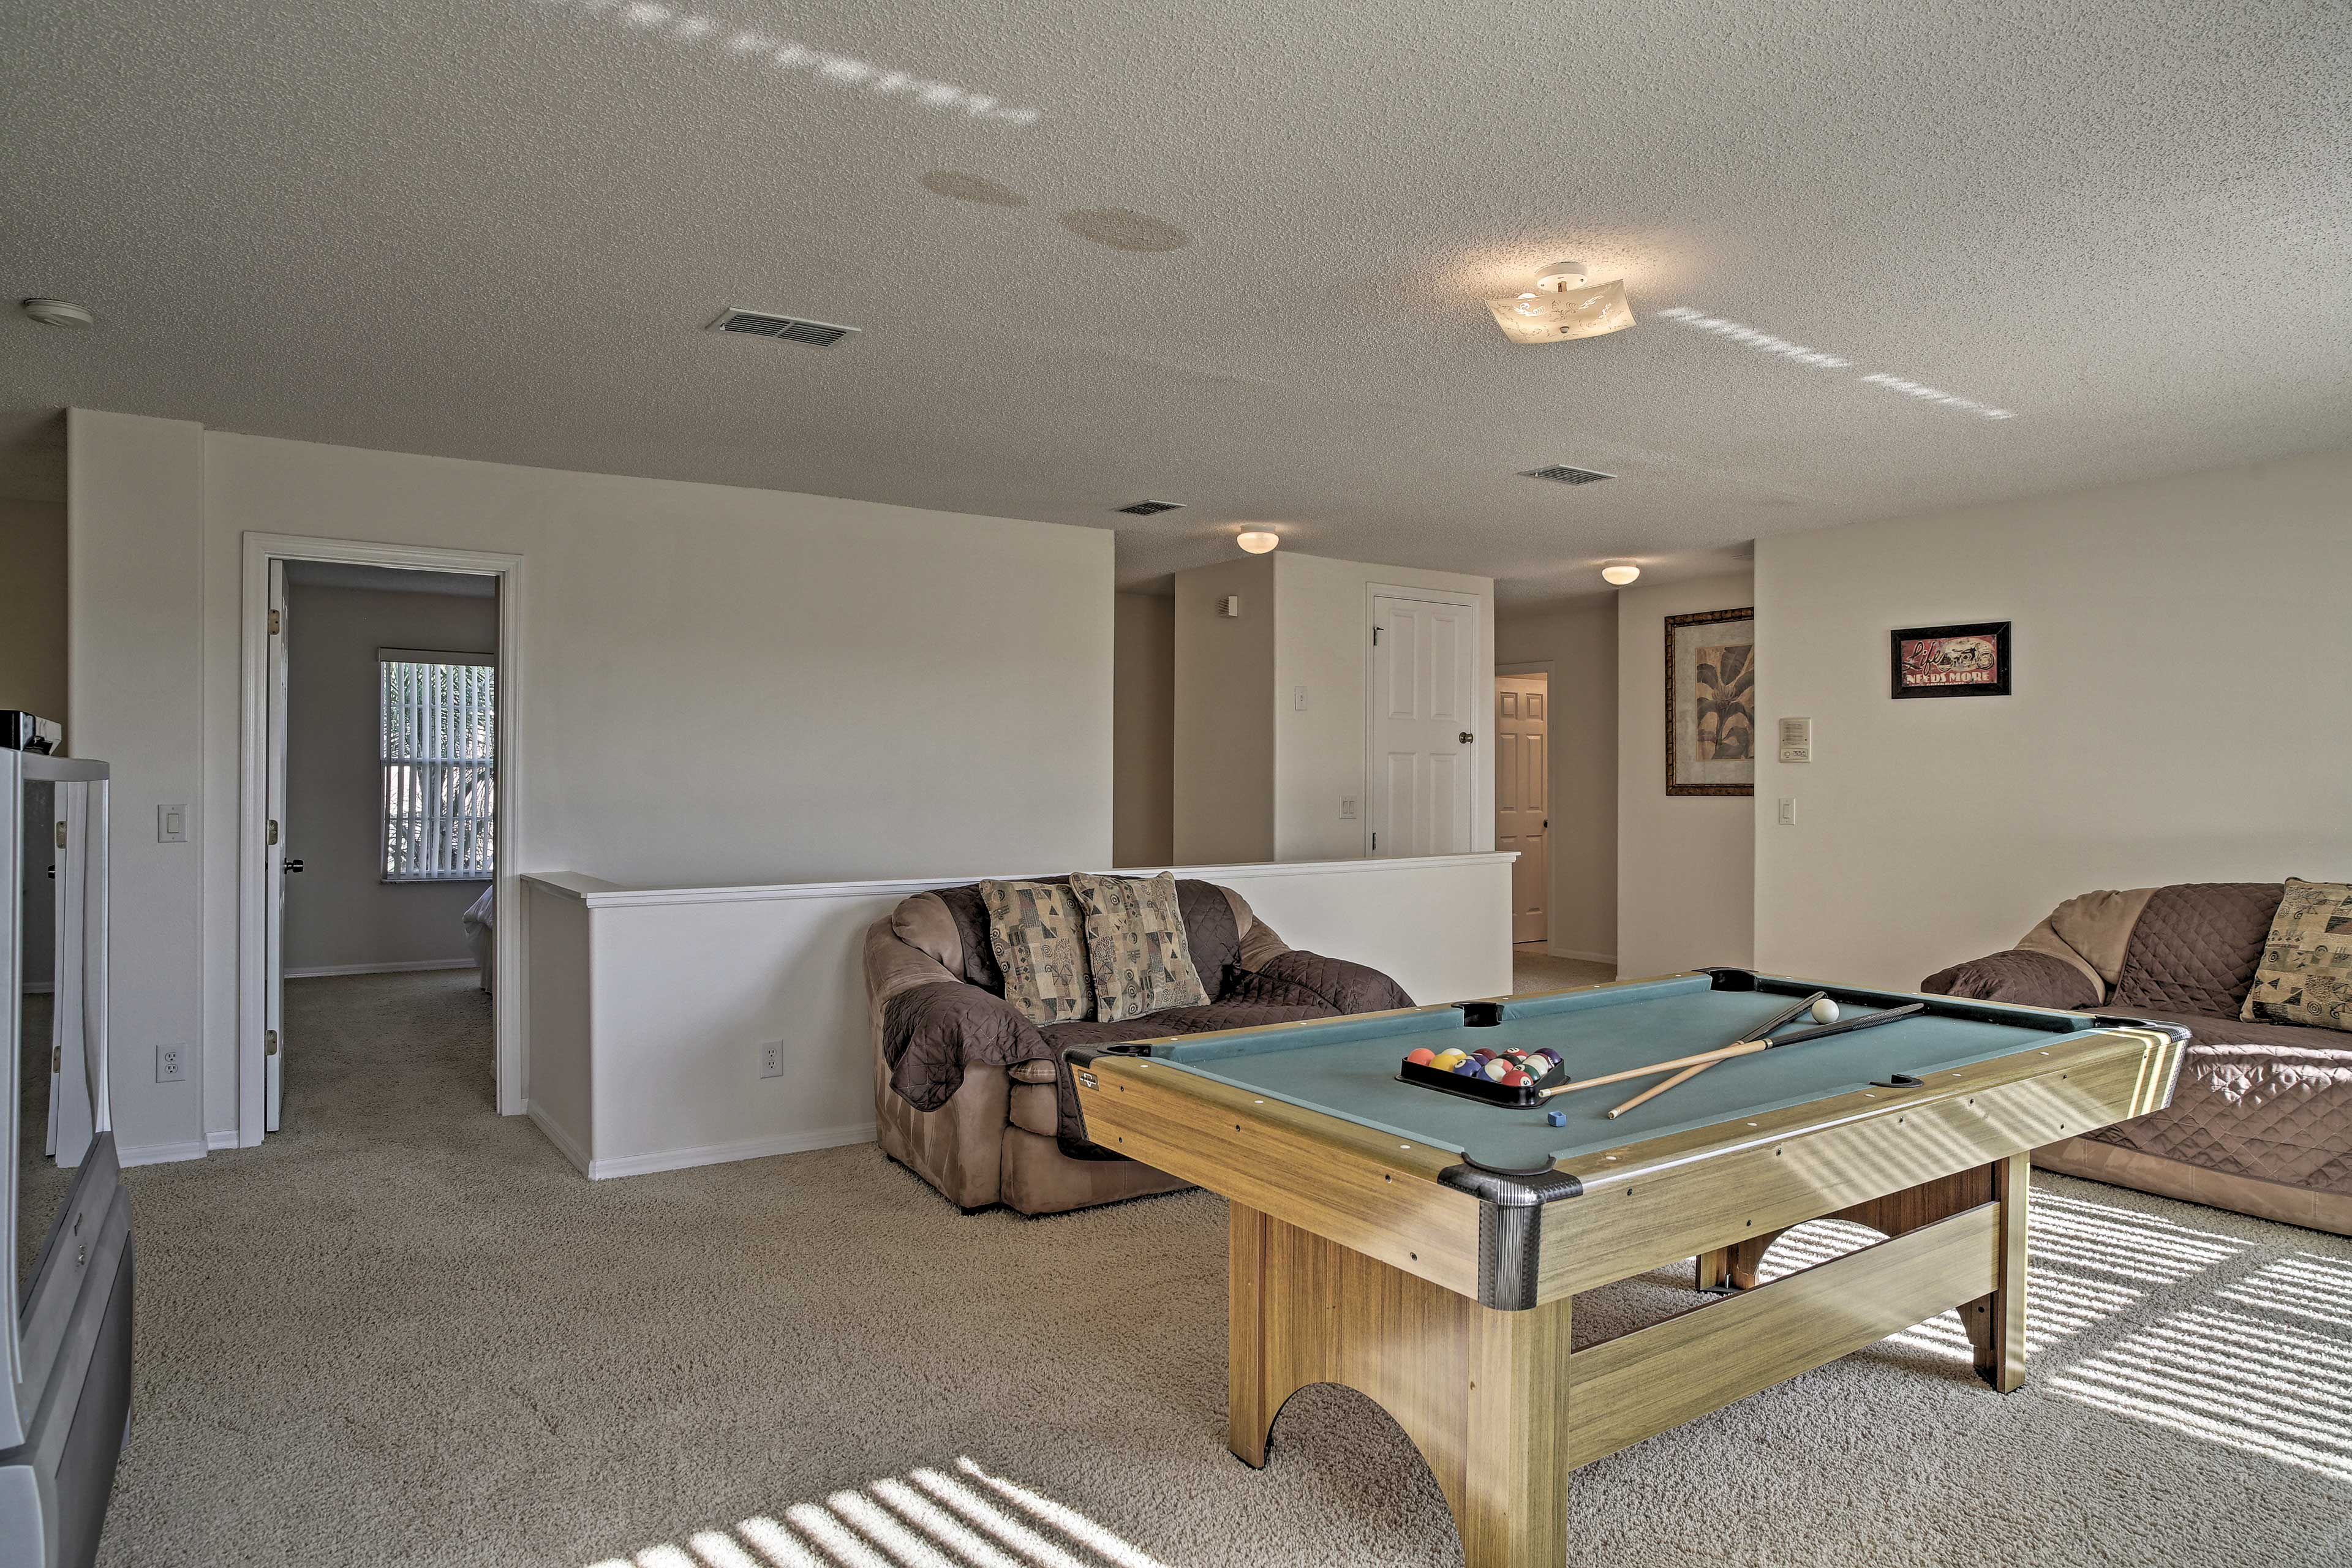 The second living room features a pool table!